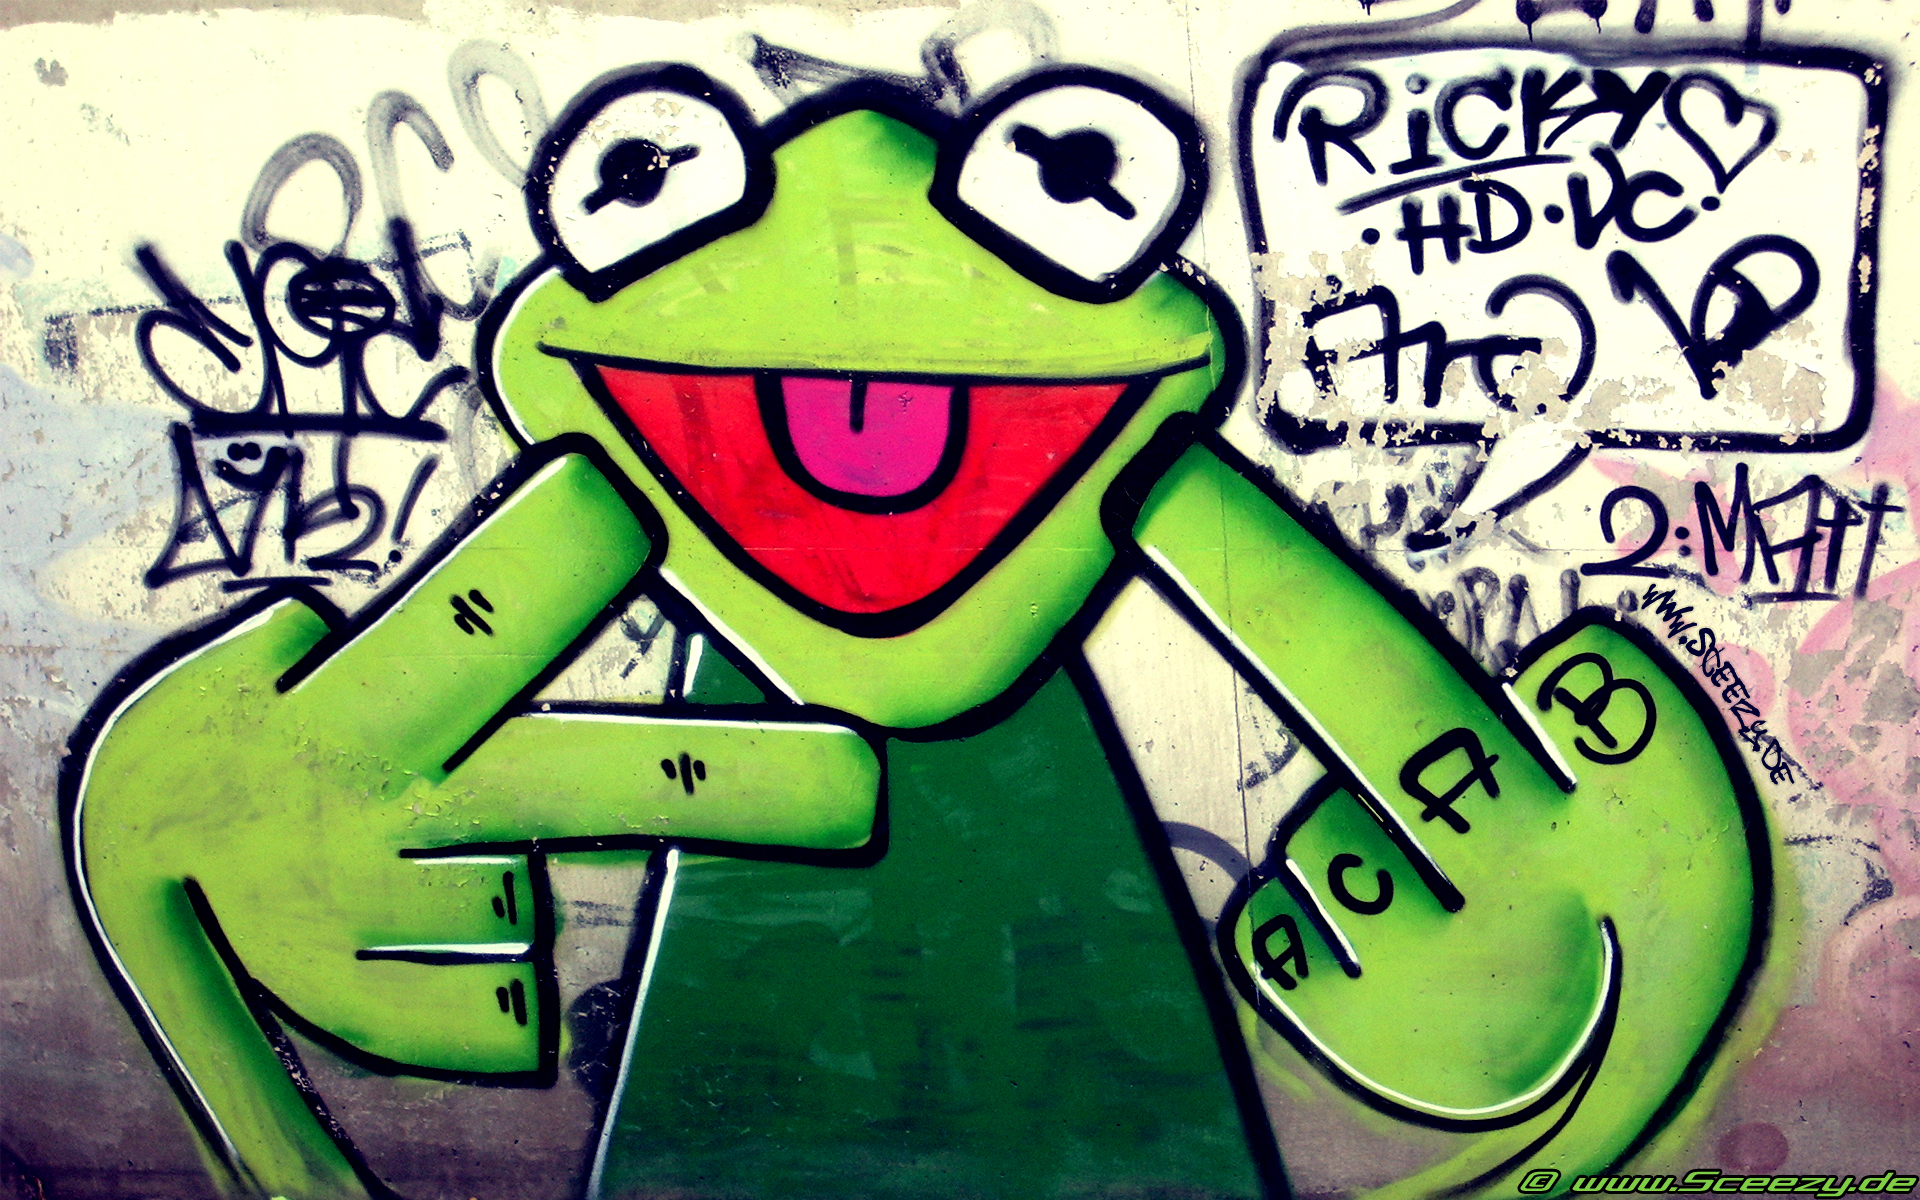 Graffiti Full HD Wallpaper and Background Image | 1920x1200 | ID:212021